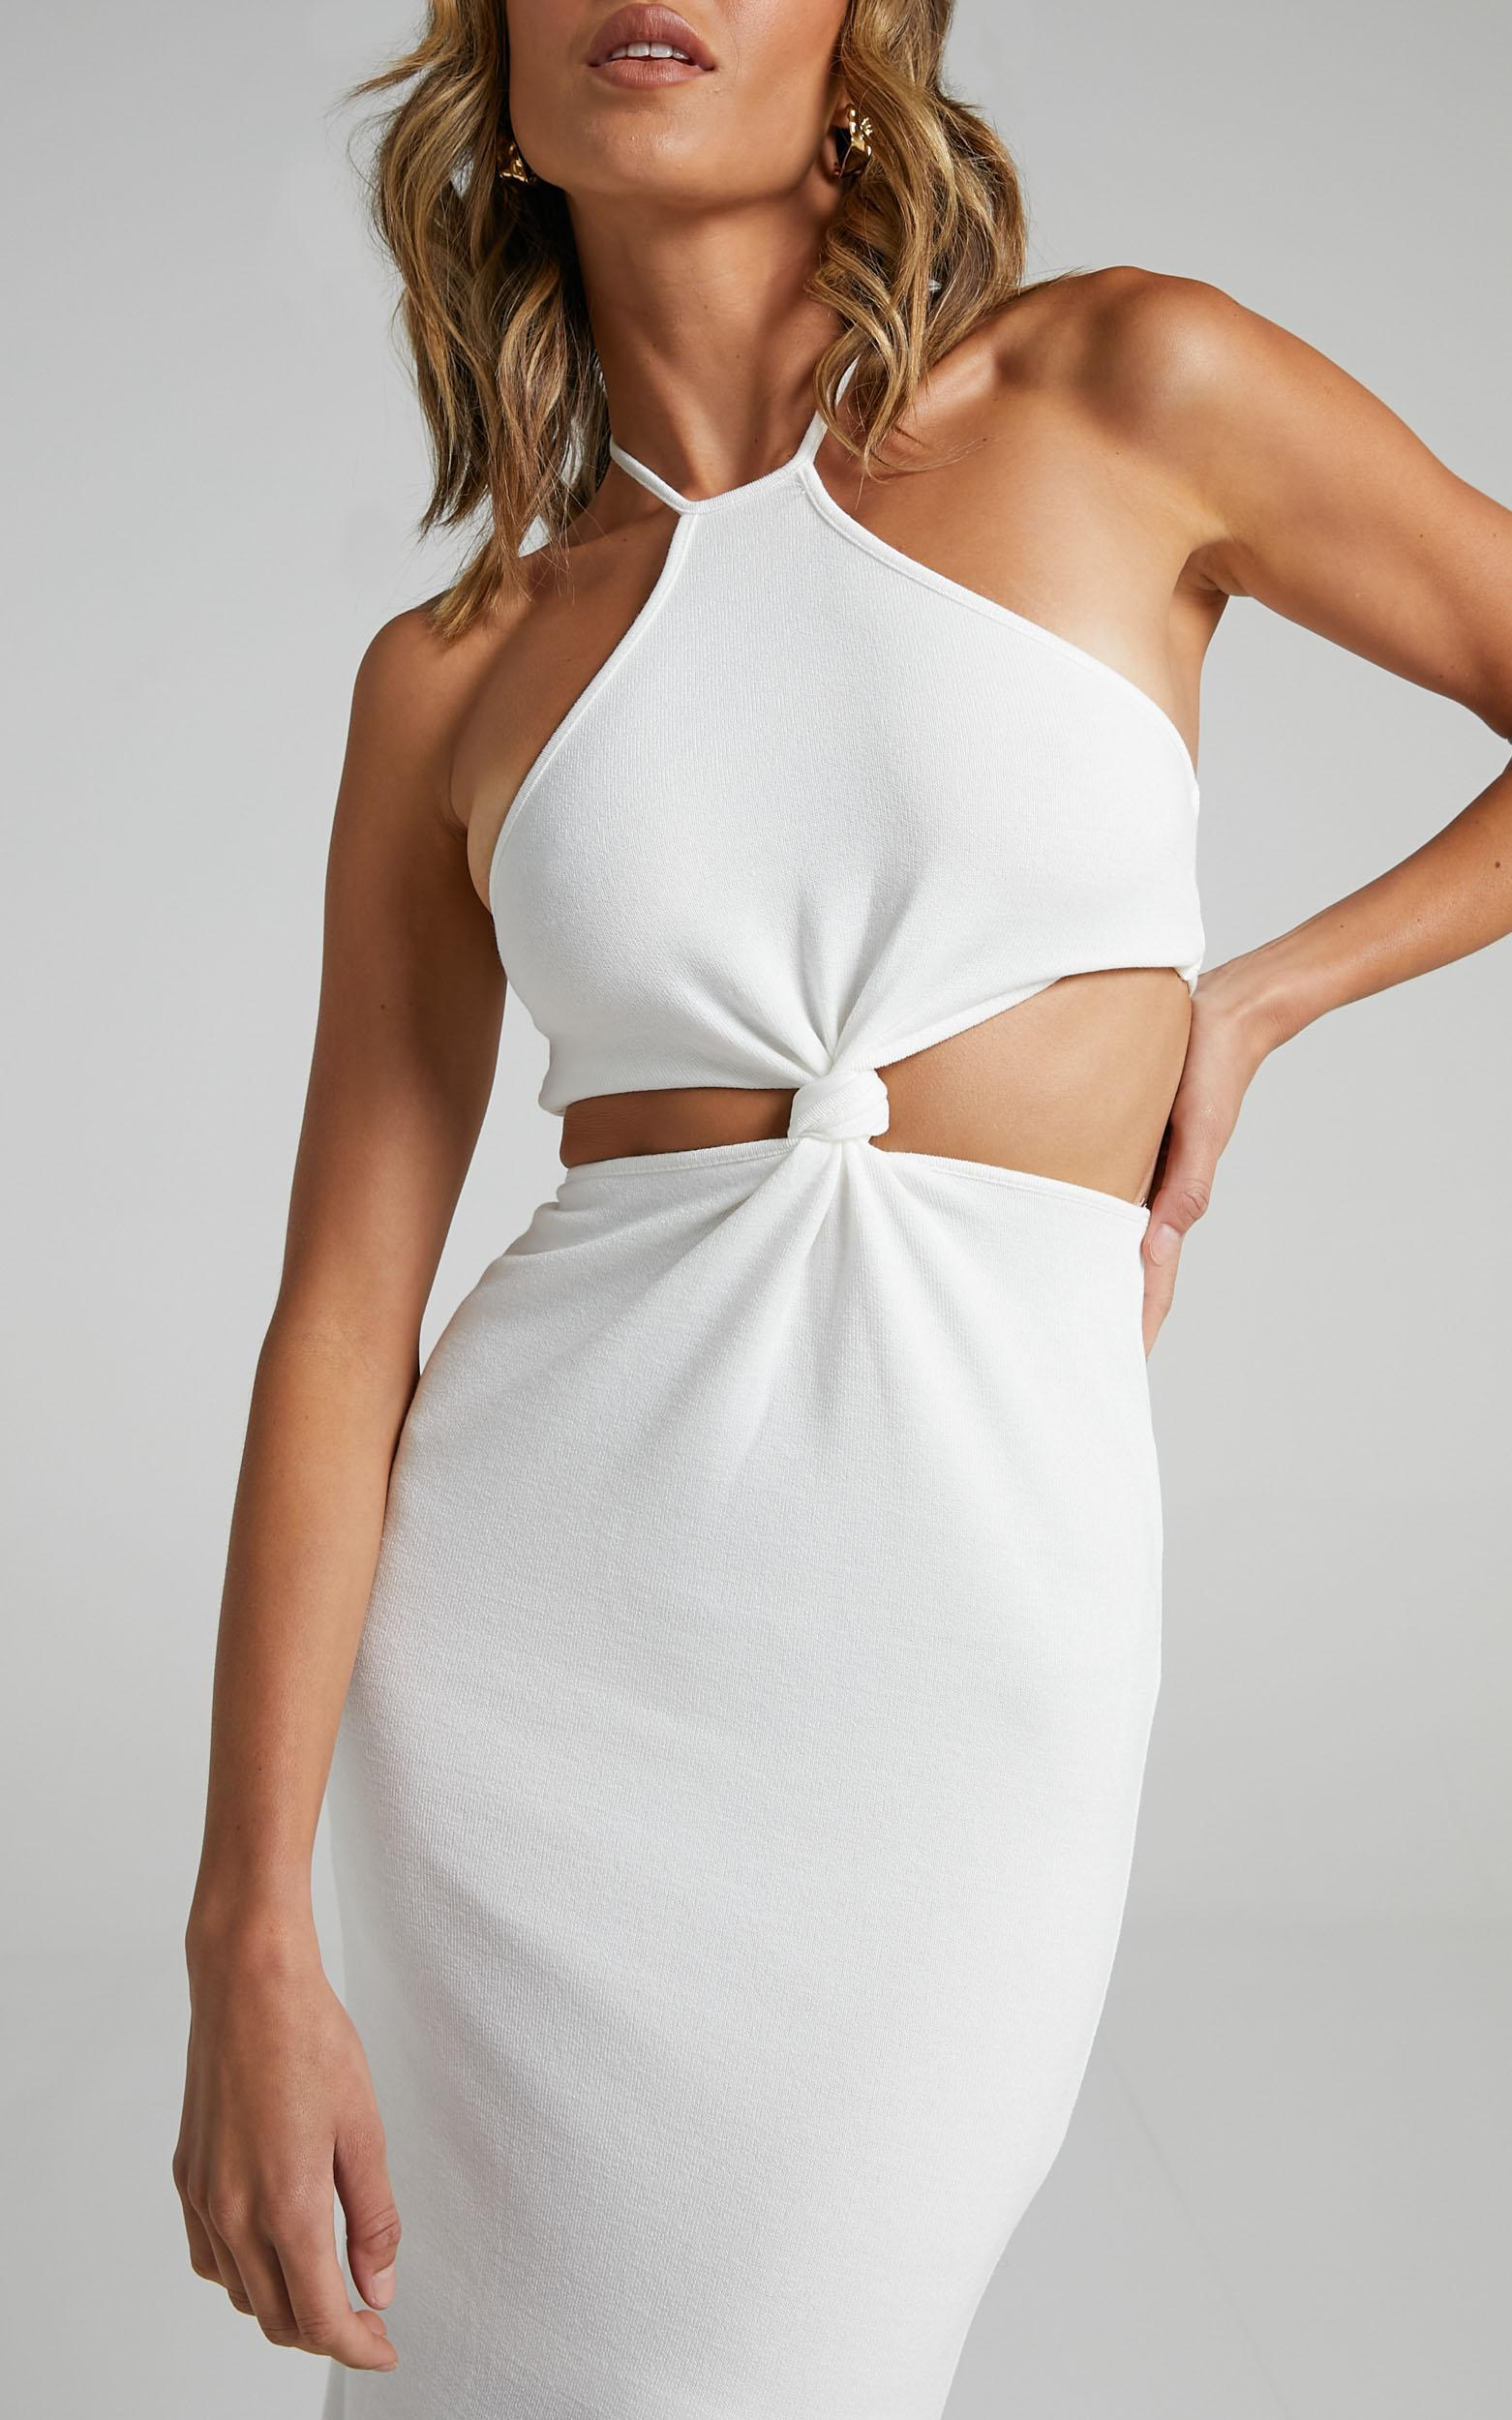 Shania Dress in White - 6 (XS), White, hi-res image number null